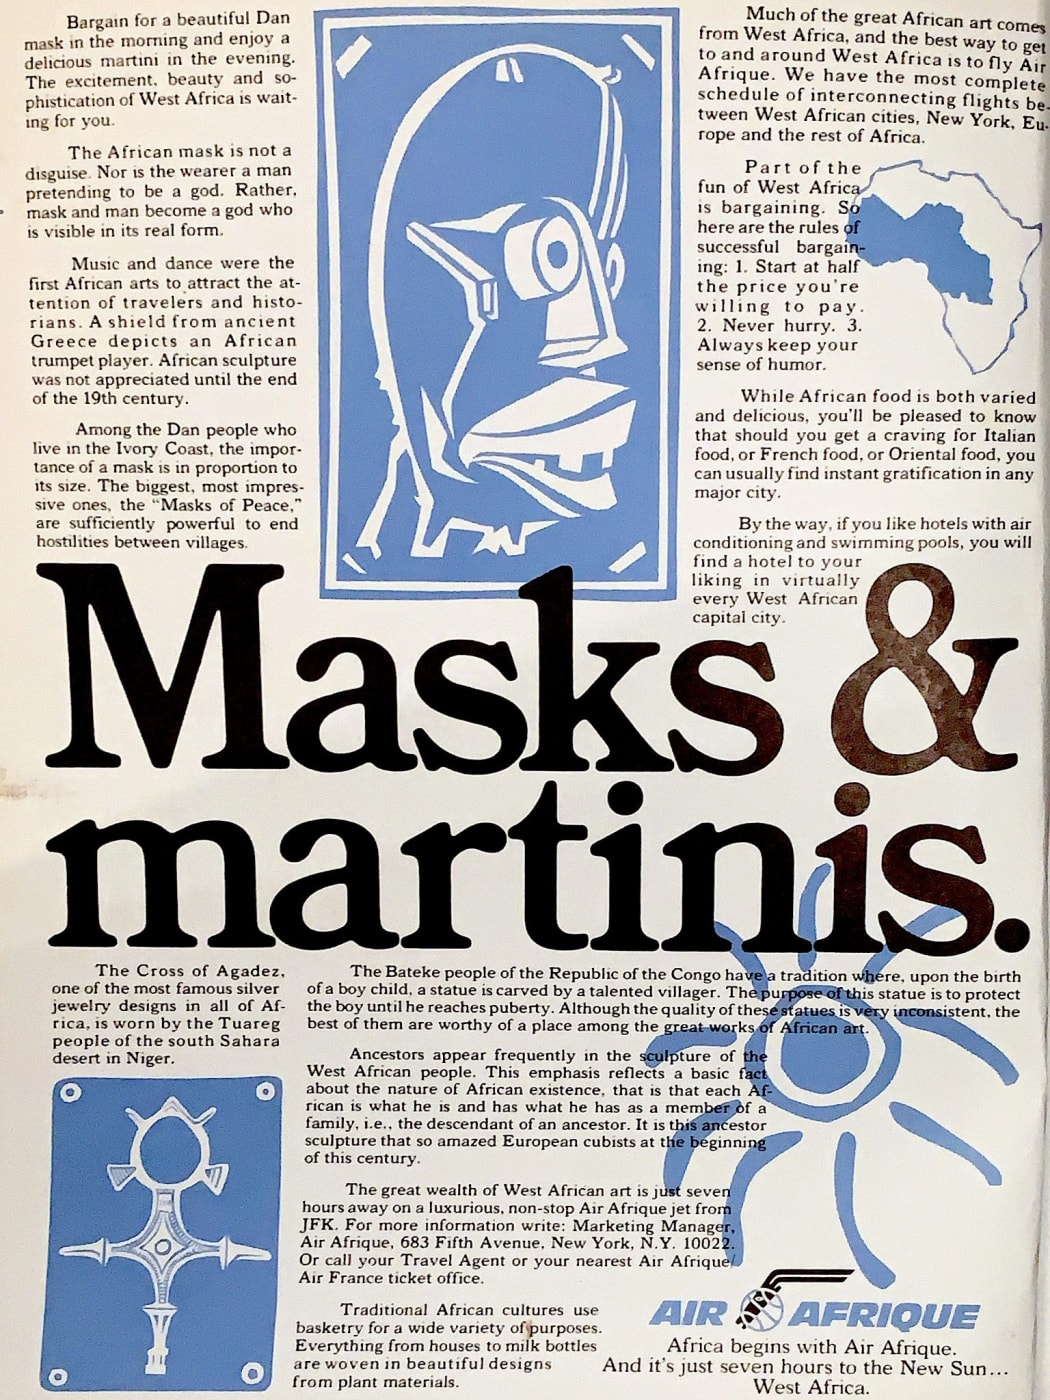 Masks & martinis – an Air Afrique advertisement from 1980